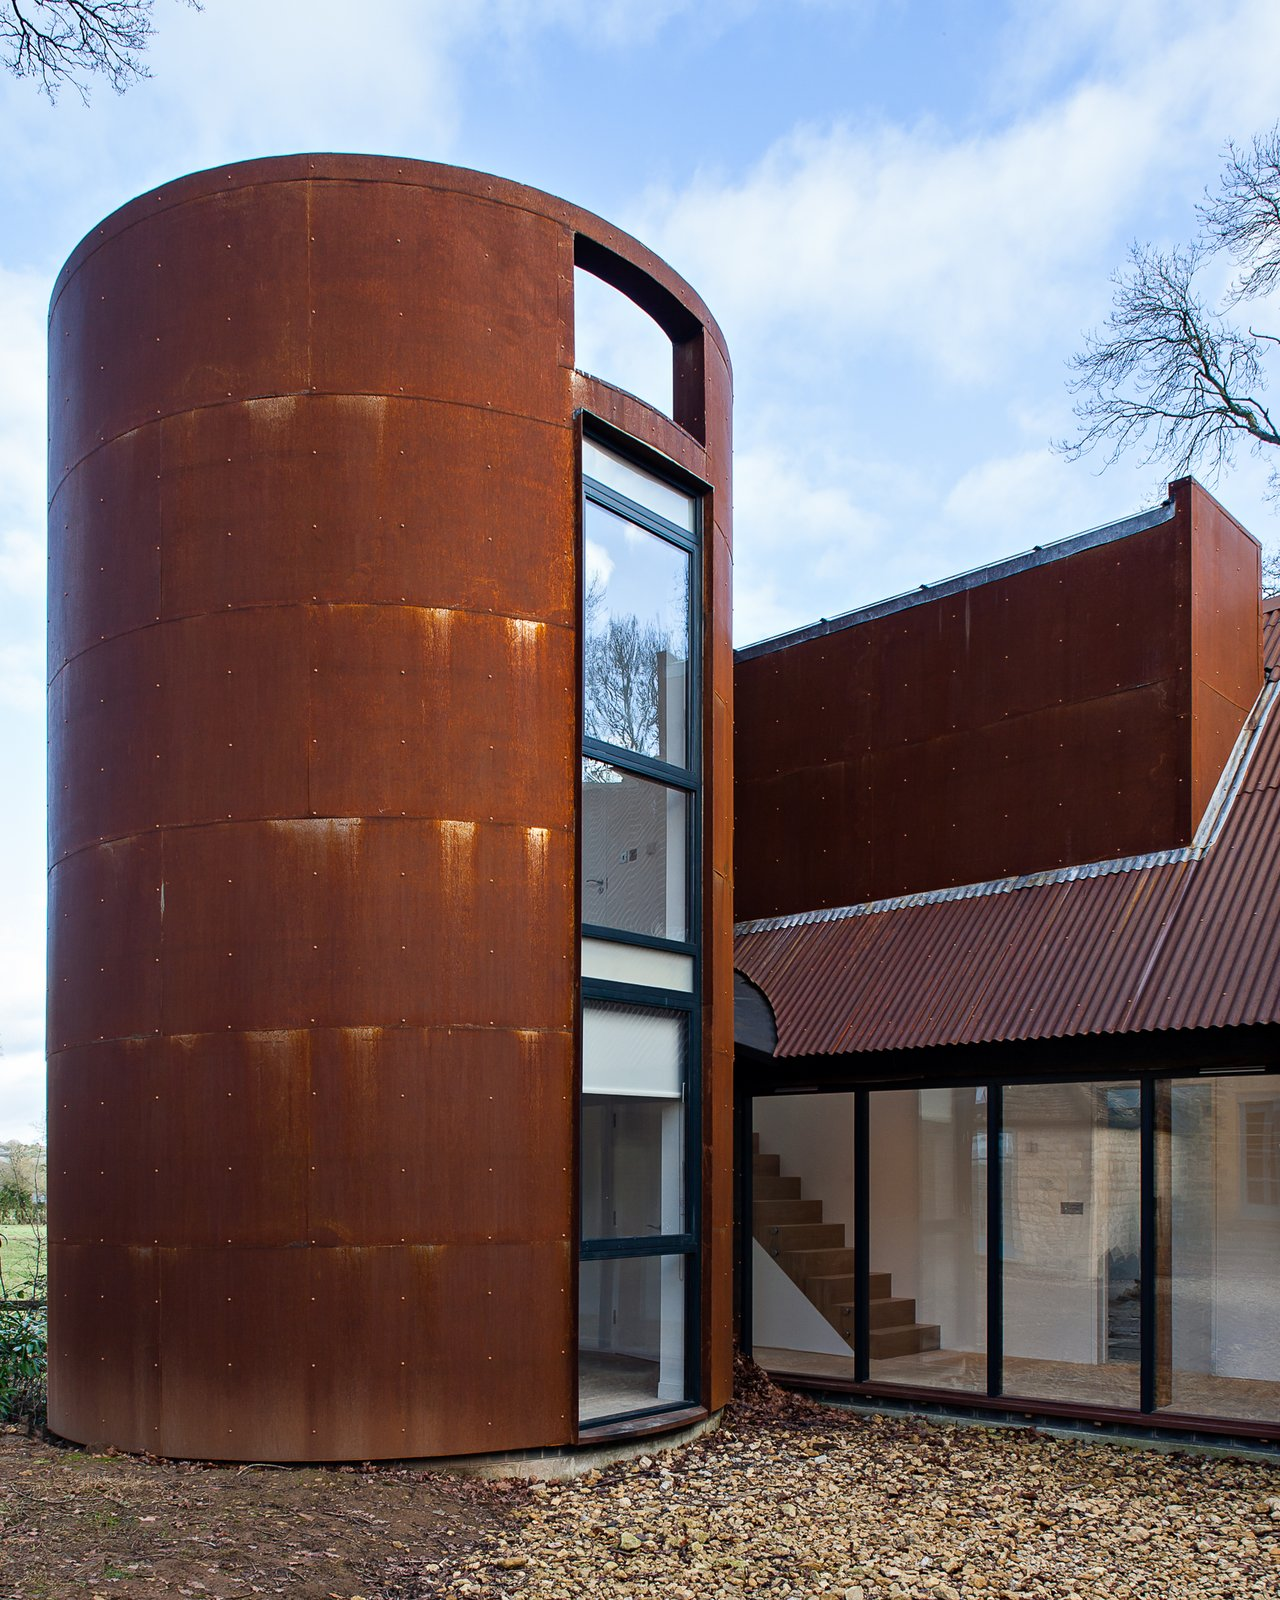 A circular tower echoes the former gas storage cylinder that once occupied its place. It houses a private study.  12 Ways to Get Creative With Cor-Ten Steel by Matthew Keeshin from This Modern Barn Looks Completely at Home in the English Countryside